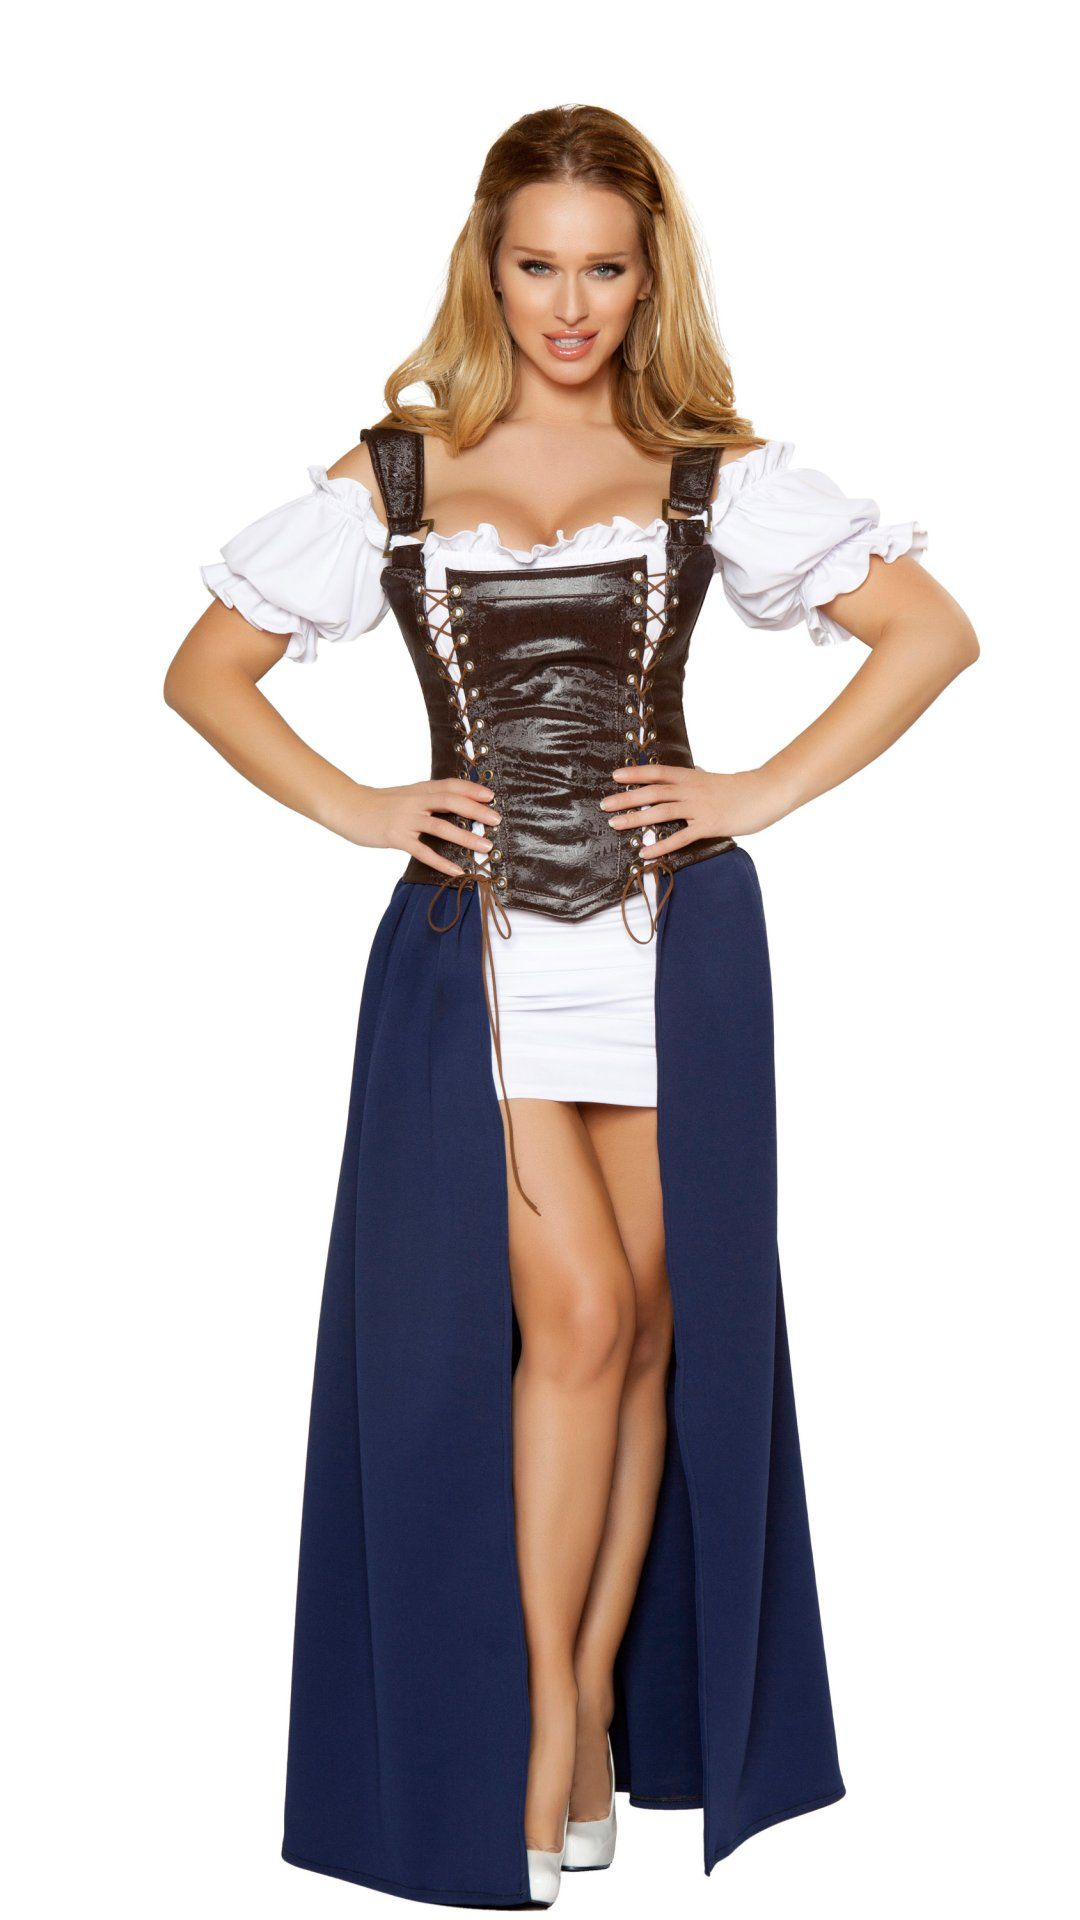 Sexy adult medieval wench costume role